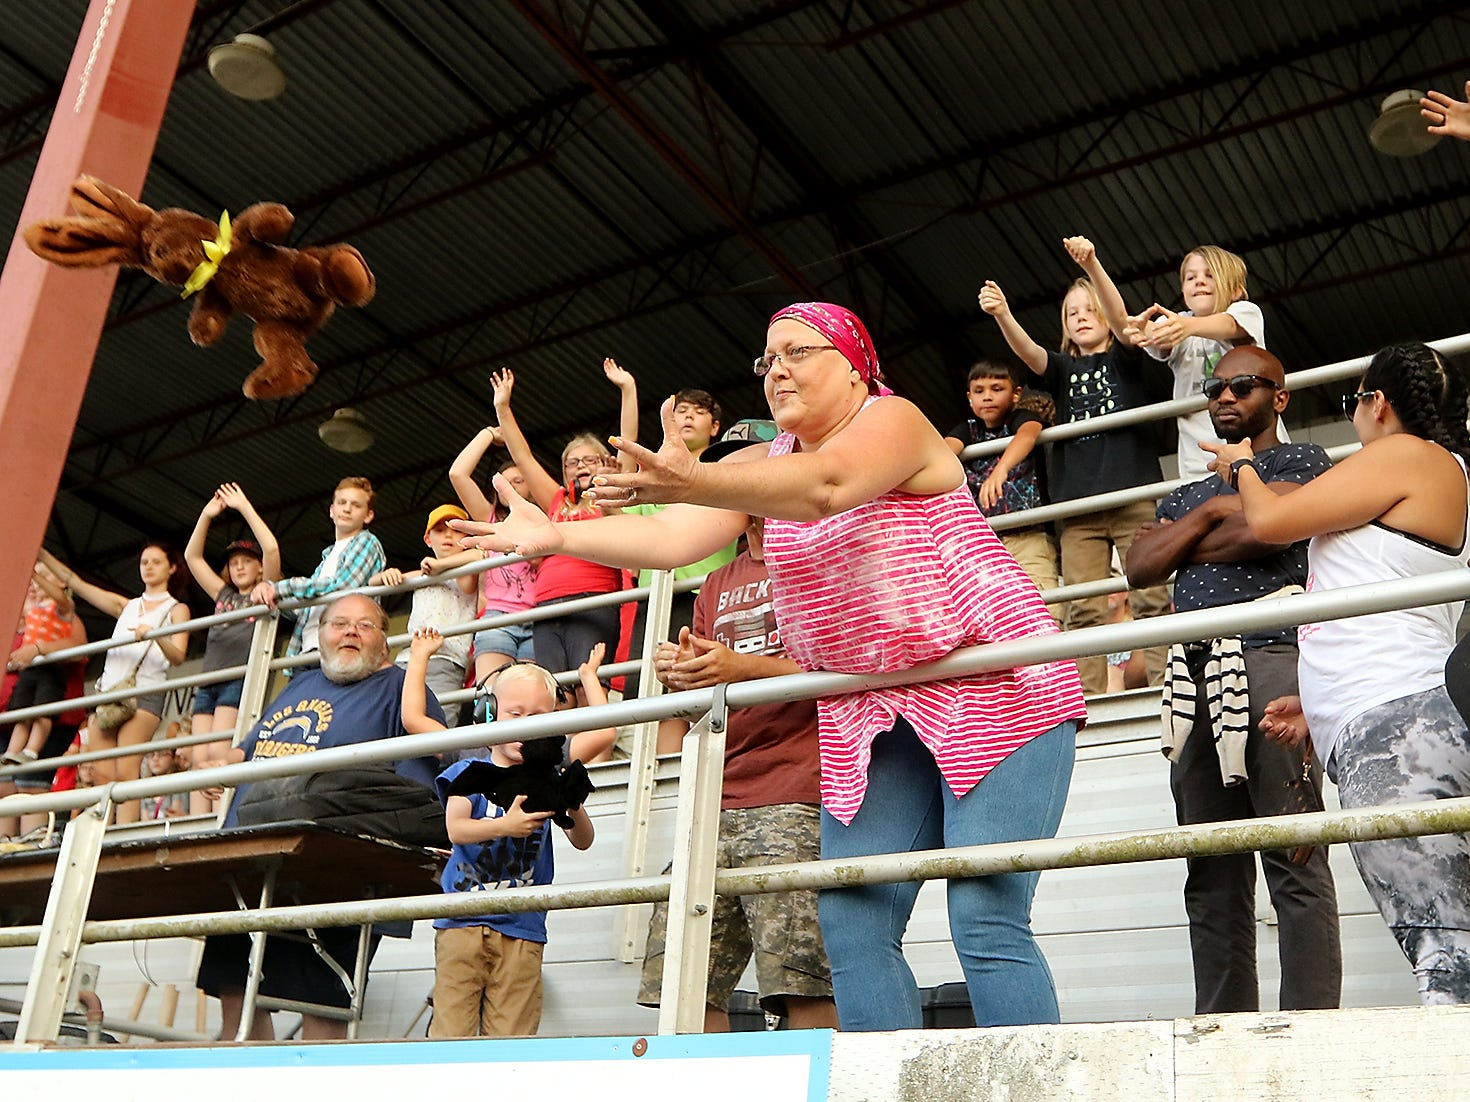 A stuffed rabbit is launched into the crowd during intermission of the Kitsap Destruction Derby at Thunderbird Arena at the Kitsap County Fairgrounds on Saturday, July 28, 2018.